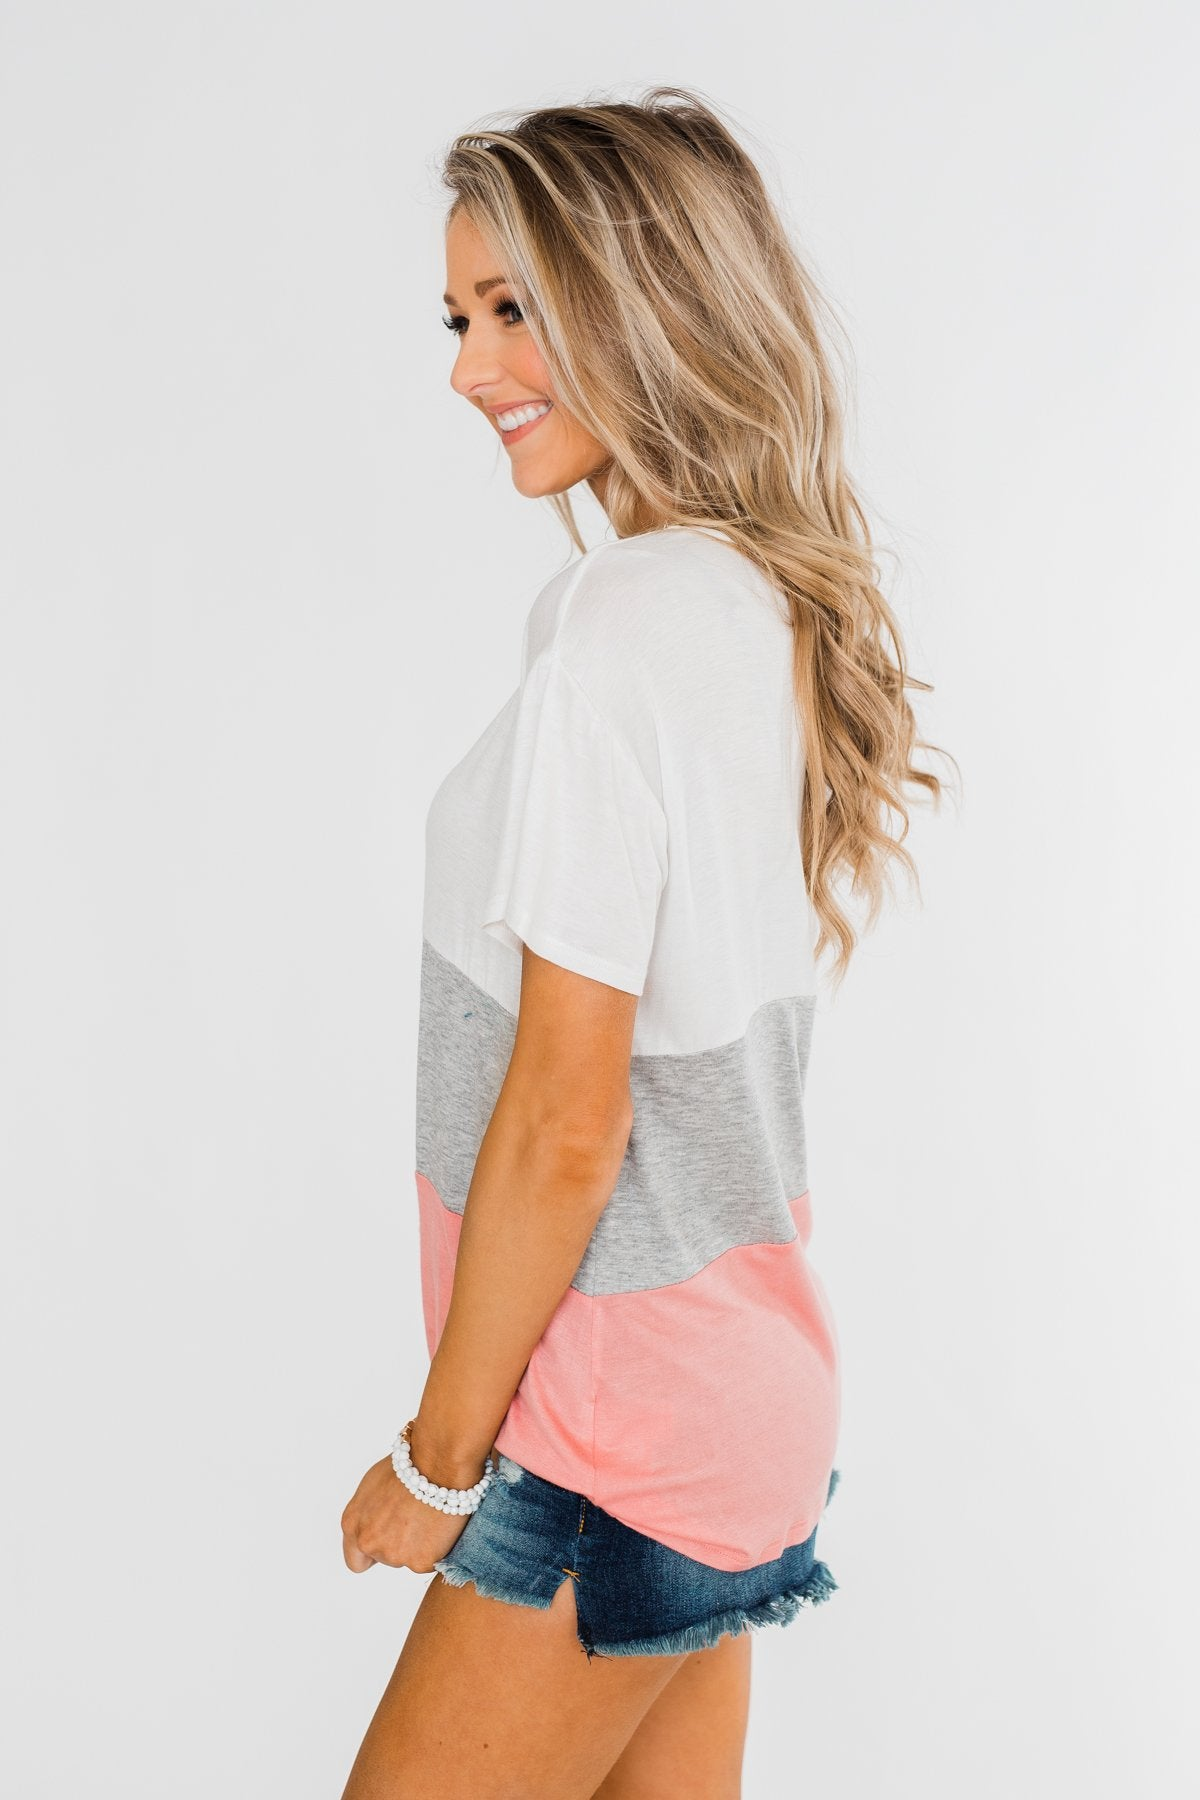 By My Side Criss Cross Color Block Top- Ivory, Grey, Pink